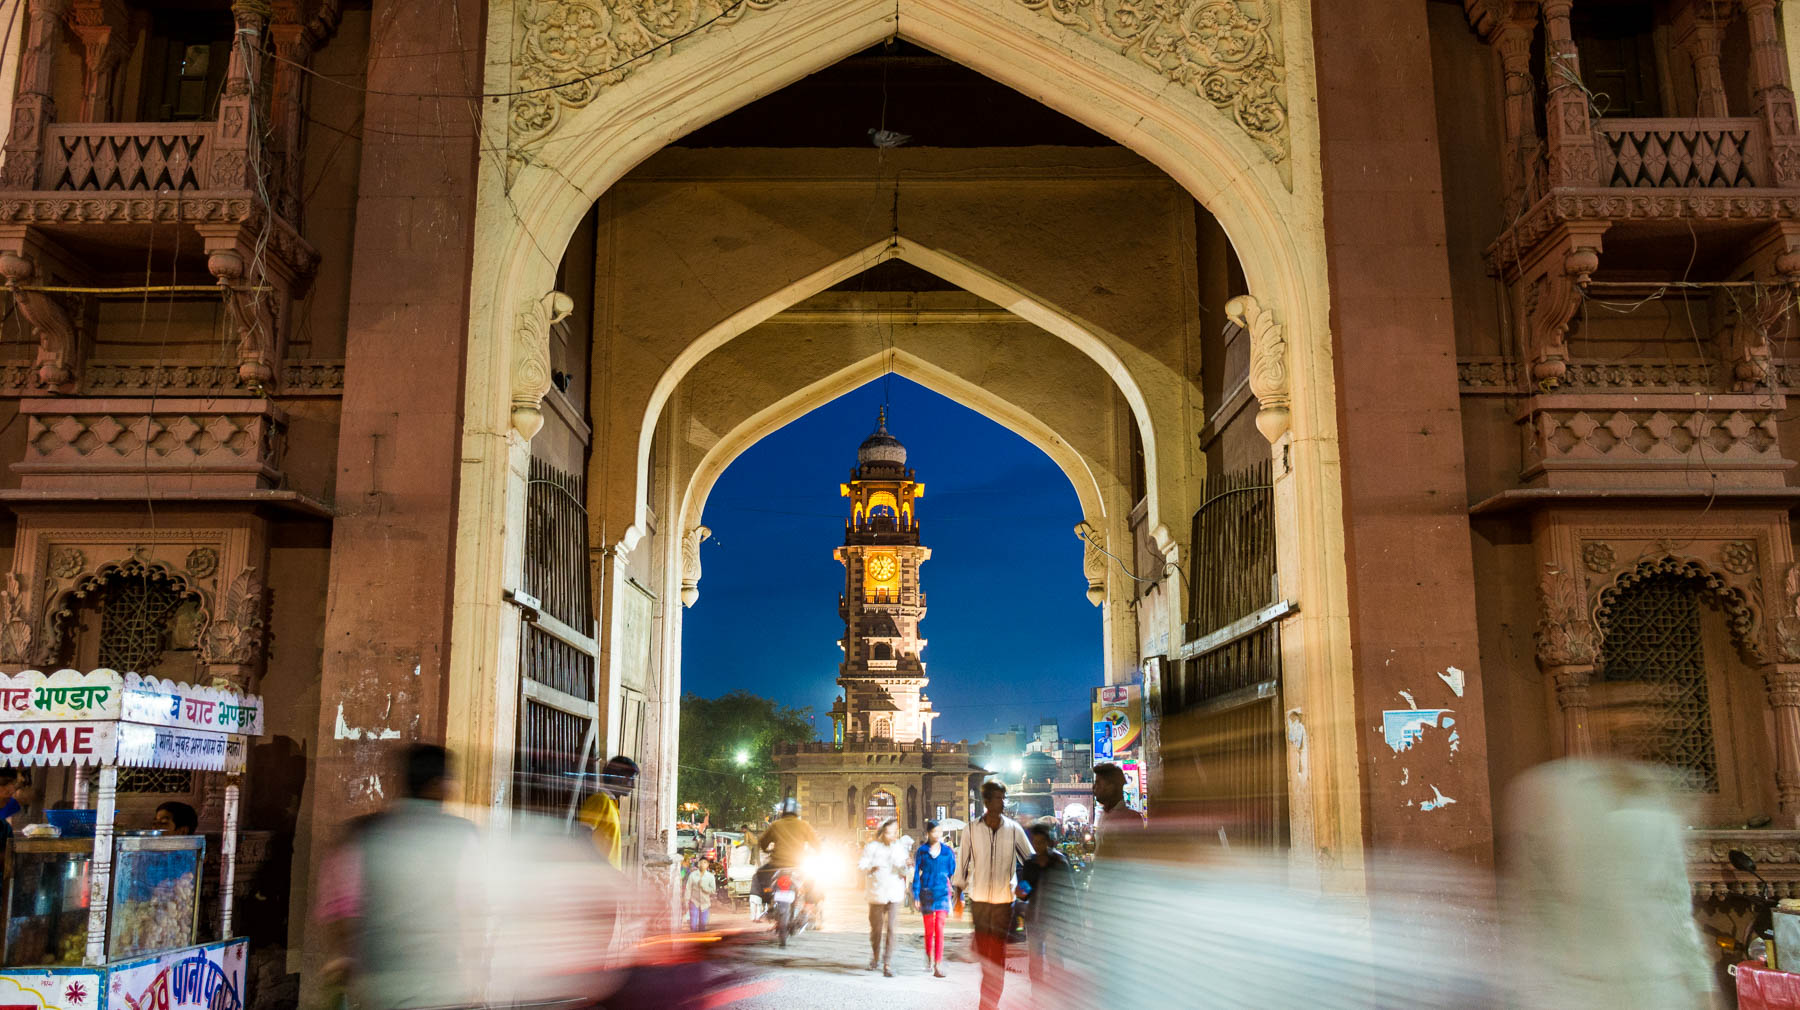 Photo essay about the streets and people of the Blue City of Jodhpur, Rajasthan, India - Night time in central market and Ghanta Ghar clock tower in Jodhpur - Lost With Purpose